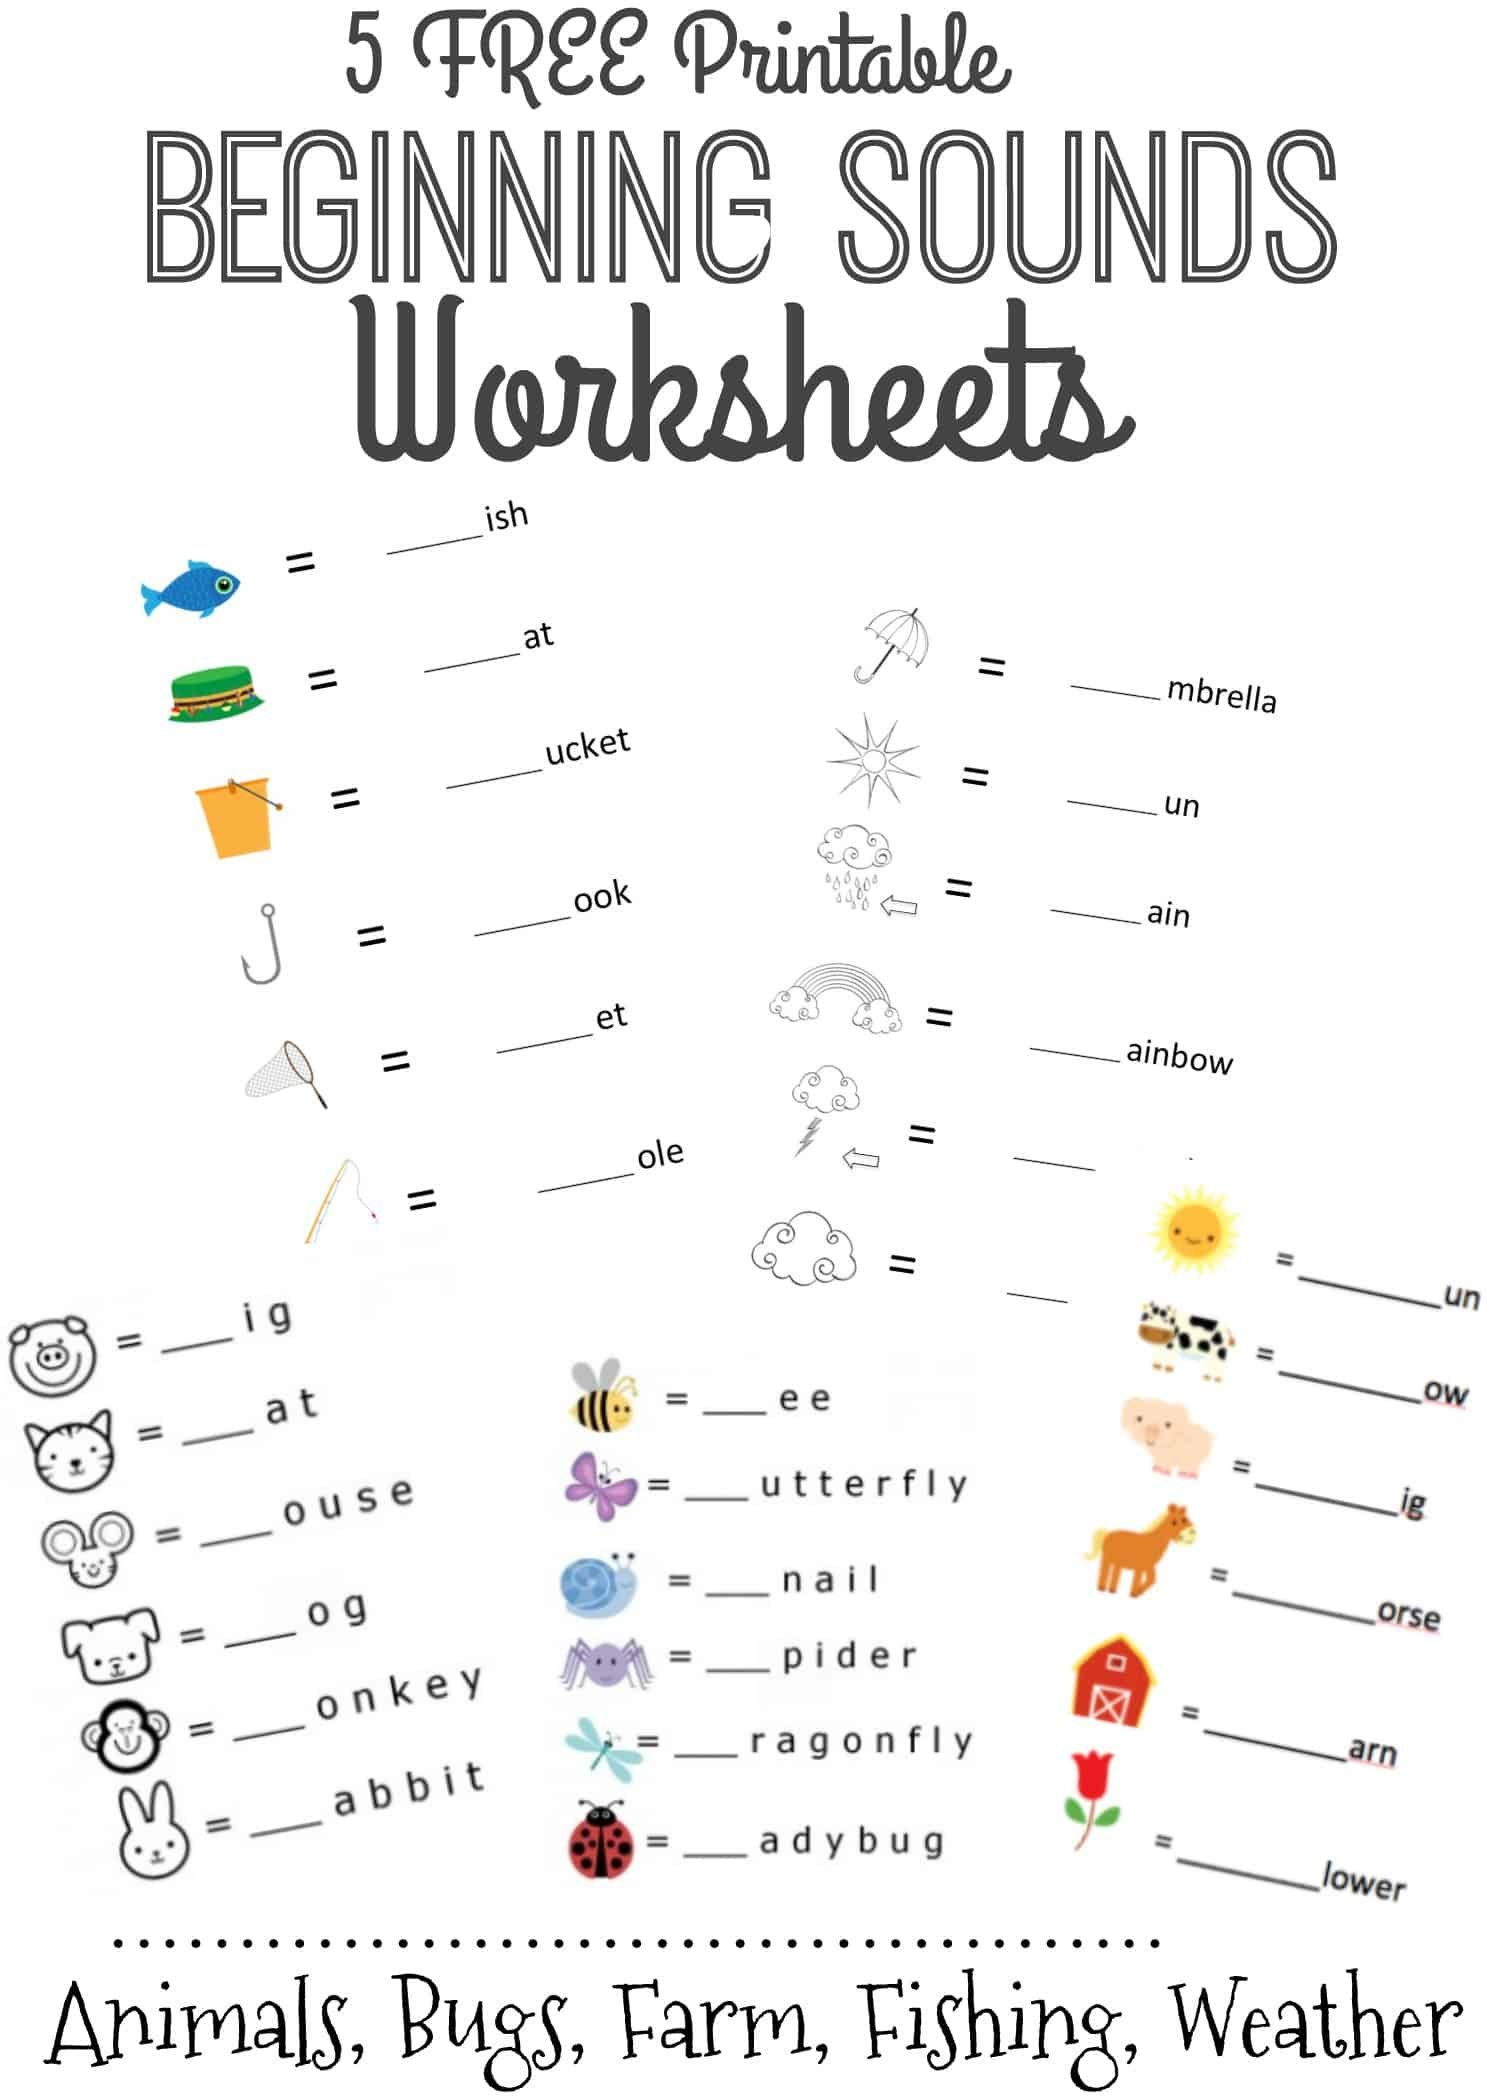 Beginning Sounds Letter Worksheets For Early Learners In Initial Sounds Worksheets